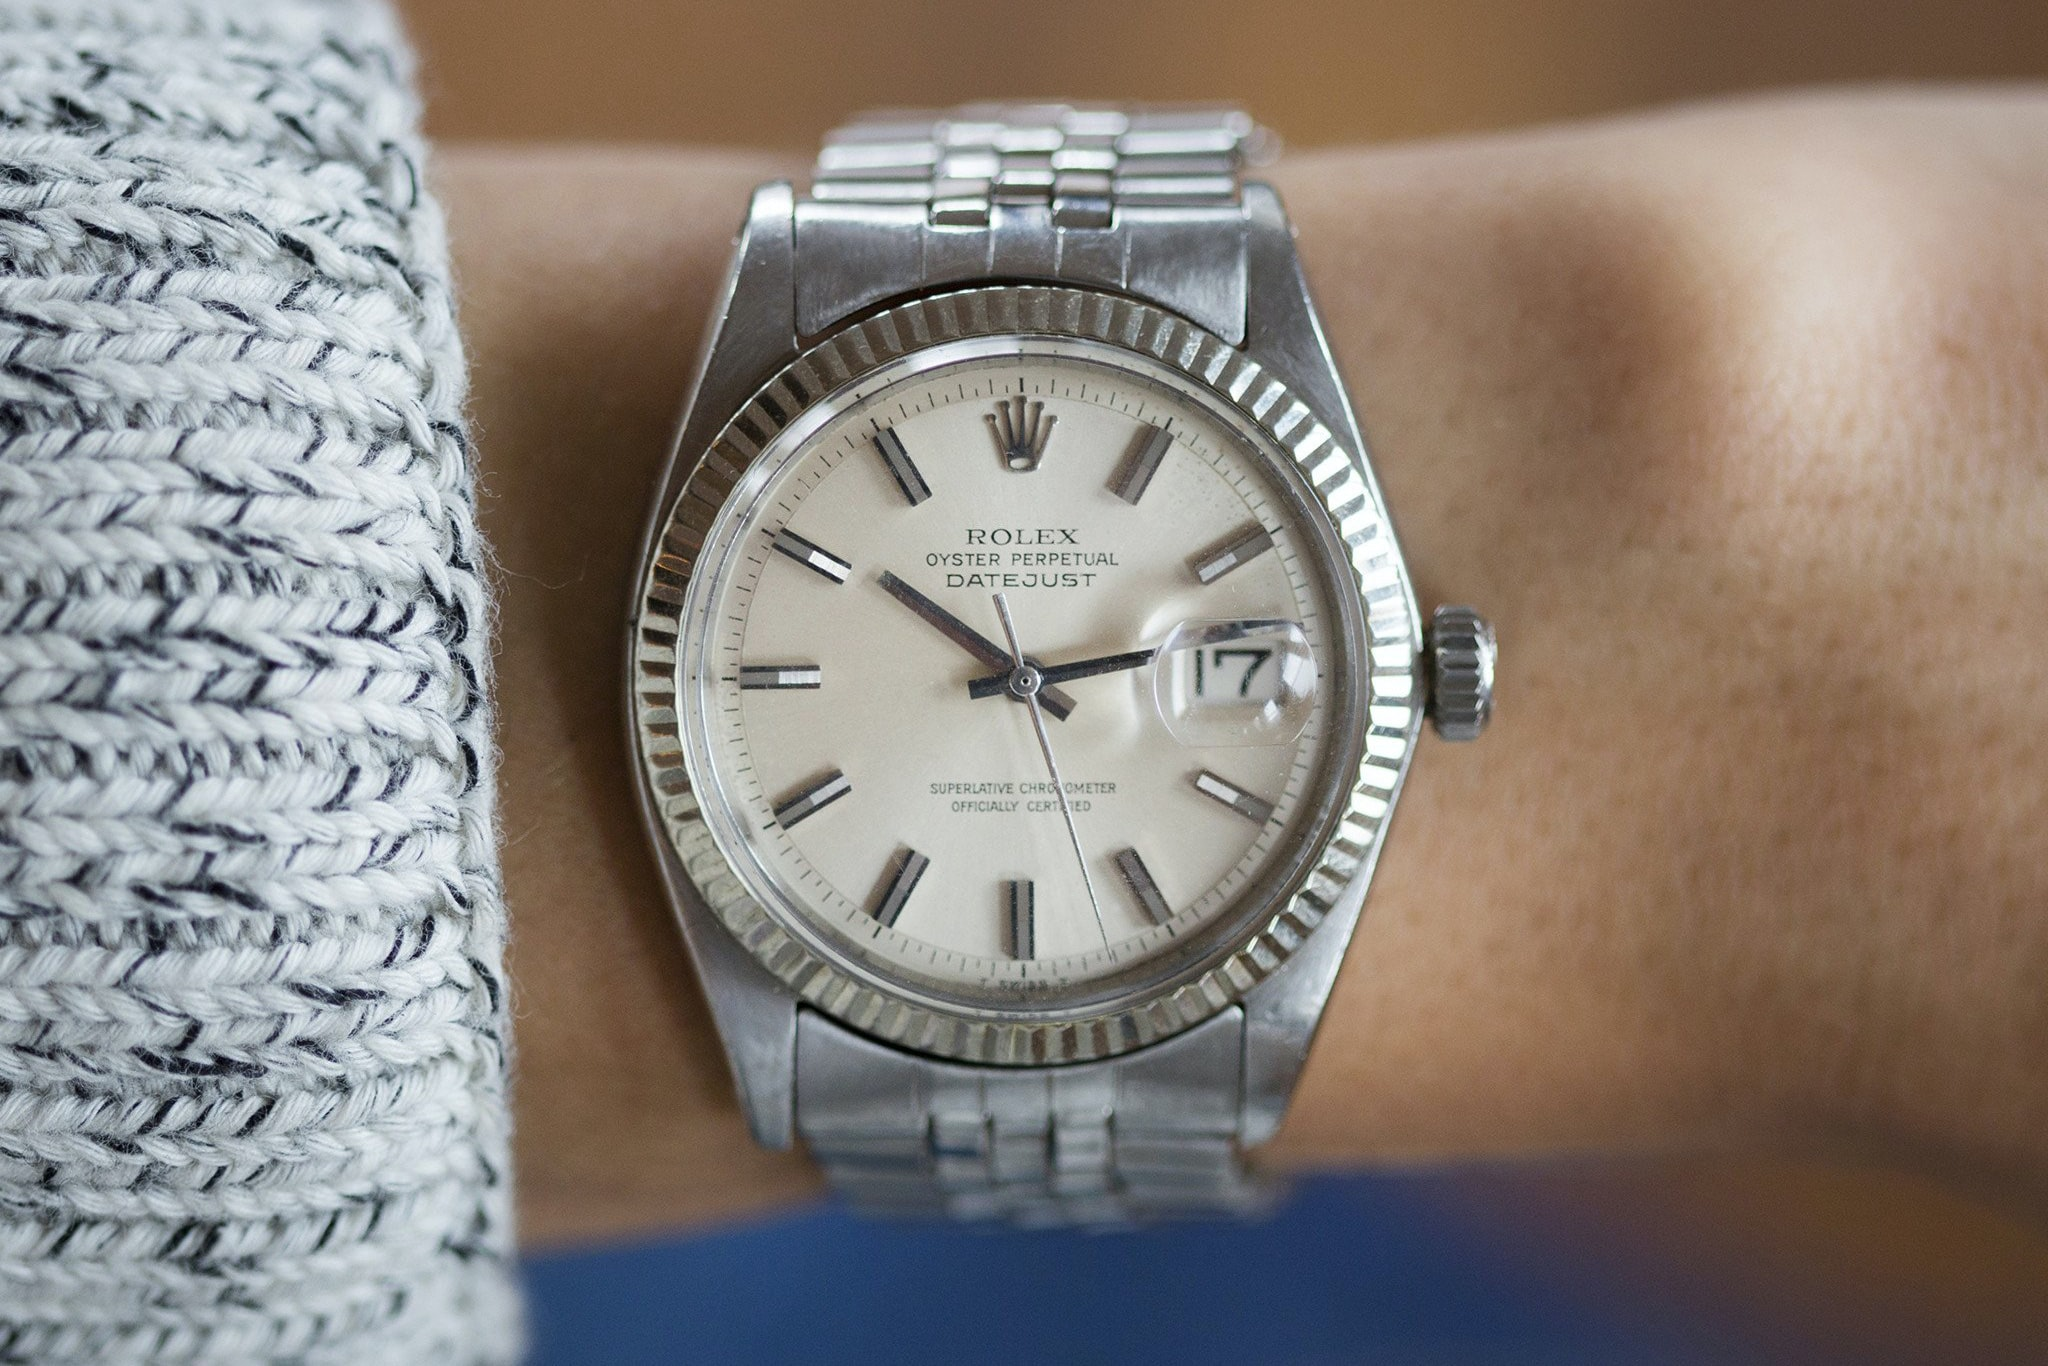 Editors' Picks: The Best Entry-Level Vintage Watches datejust